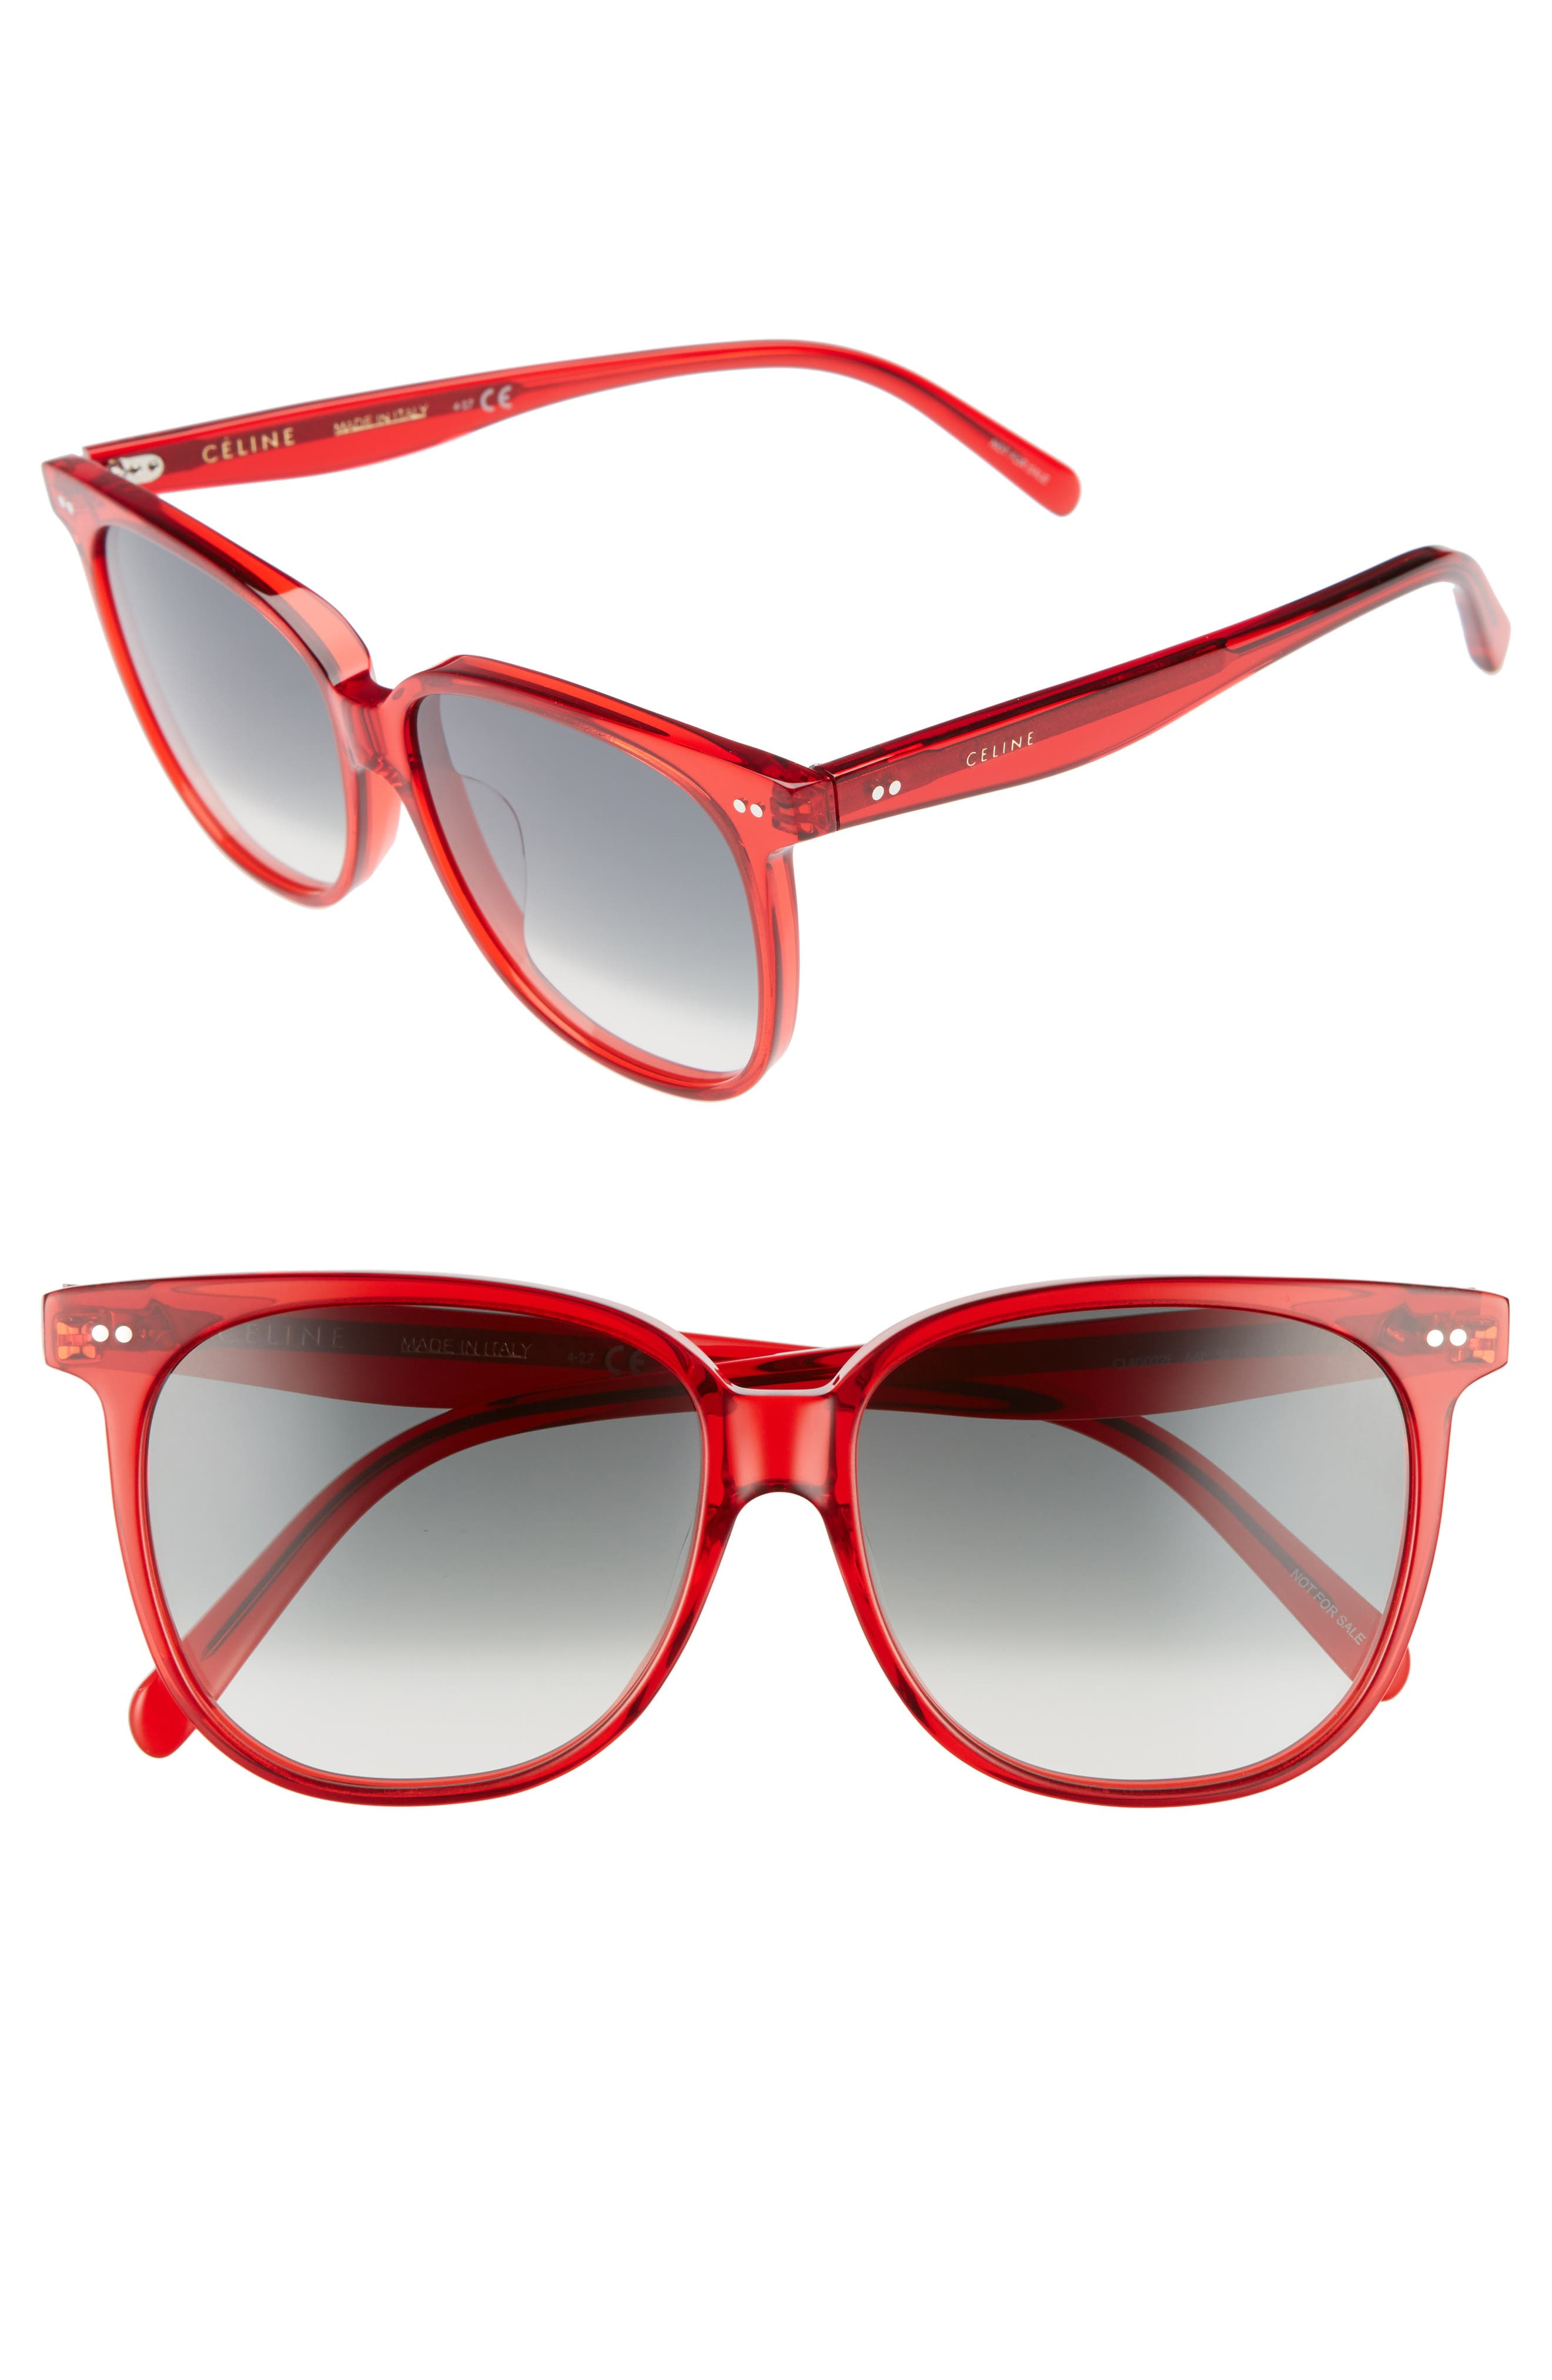 Special Fit 58mm Square Sunglasses,                             Main thumbnail 1, color,                             Red/ Green